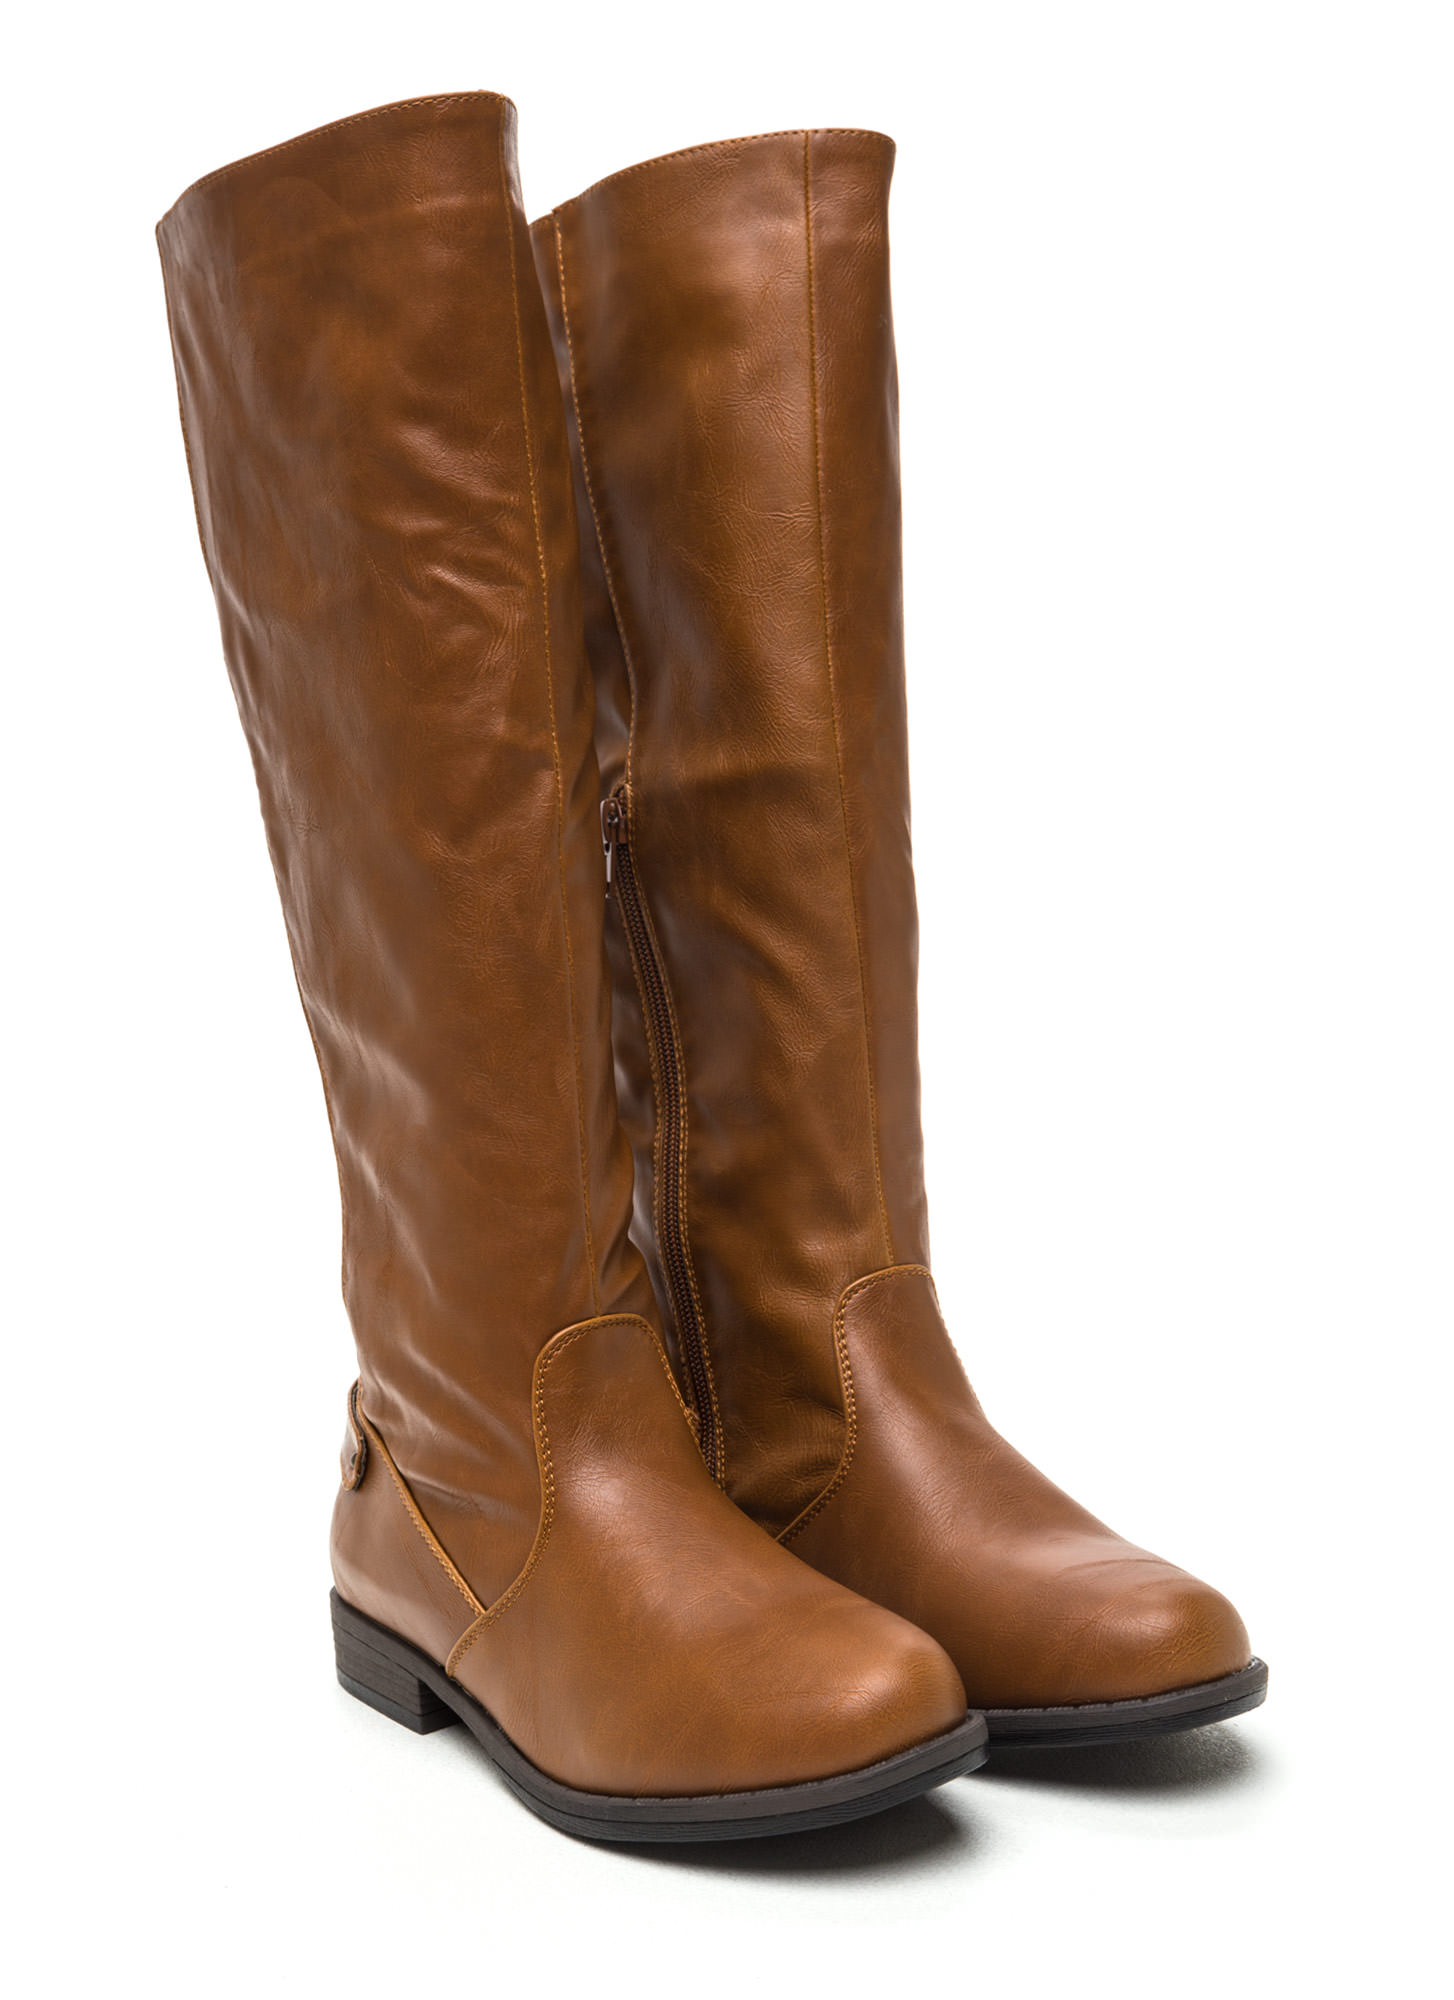 Daily Wear Faux Leather Riding Boots CHESTNUT